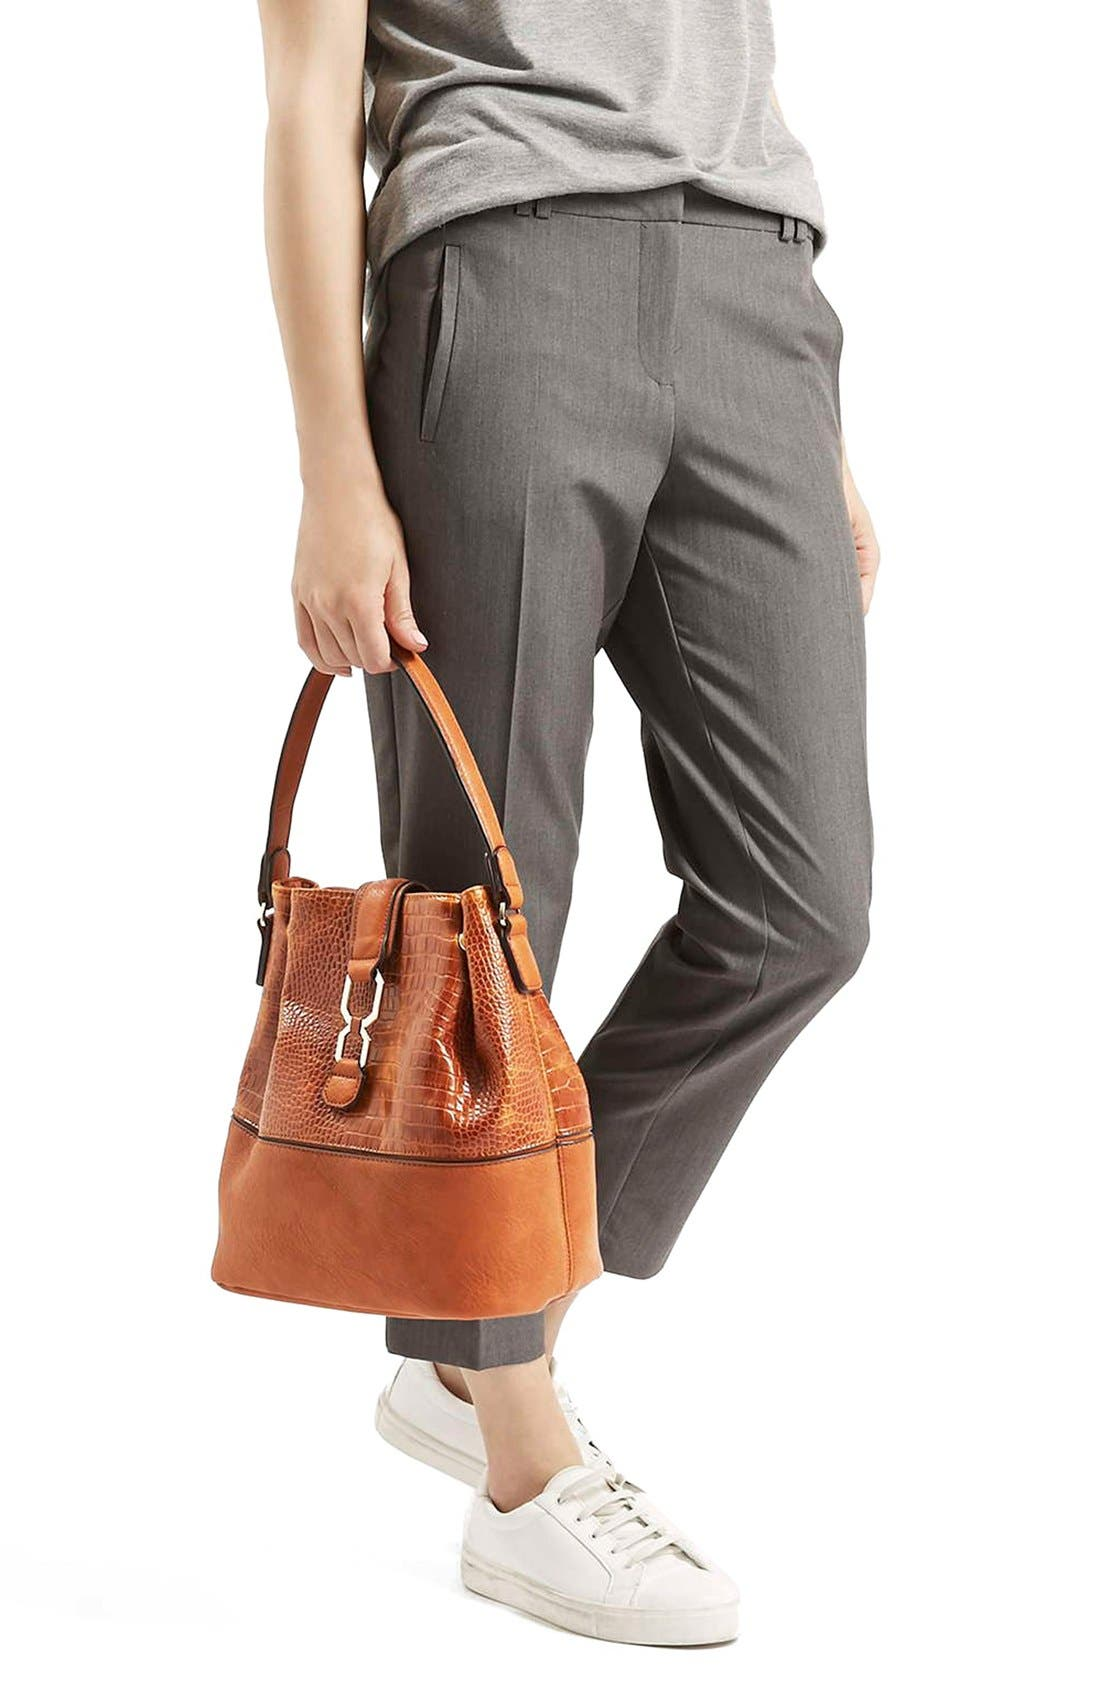 TOPSHOP, Embossed Faux Leather Bucket Bag, Alternate thumbnail 2, color, 210